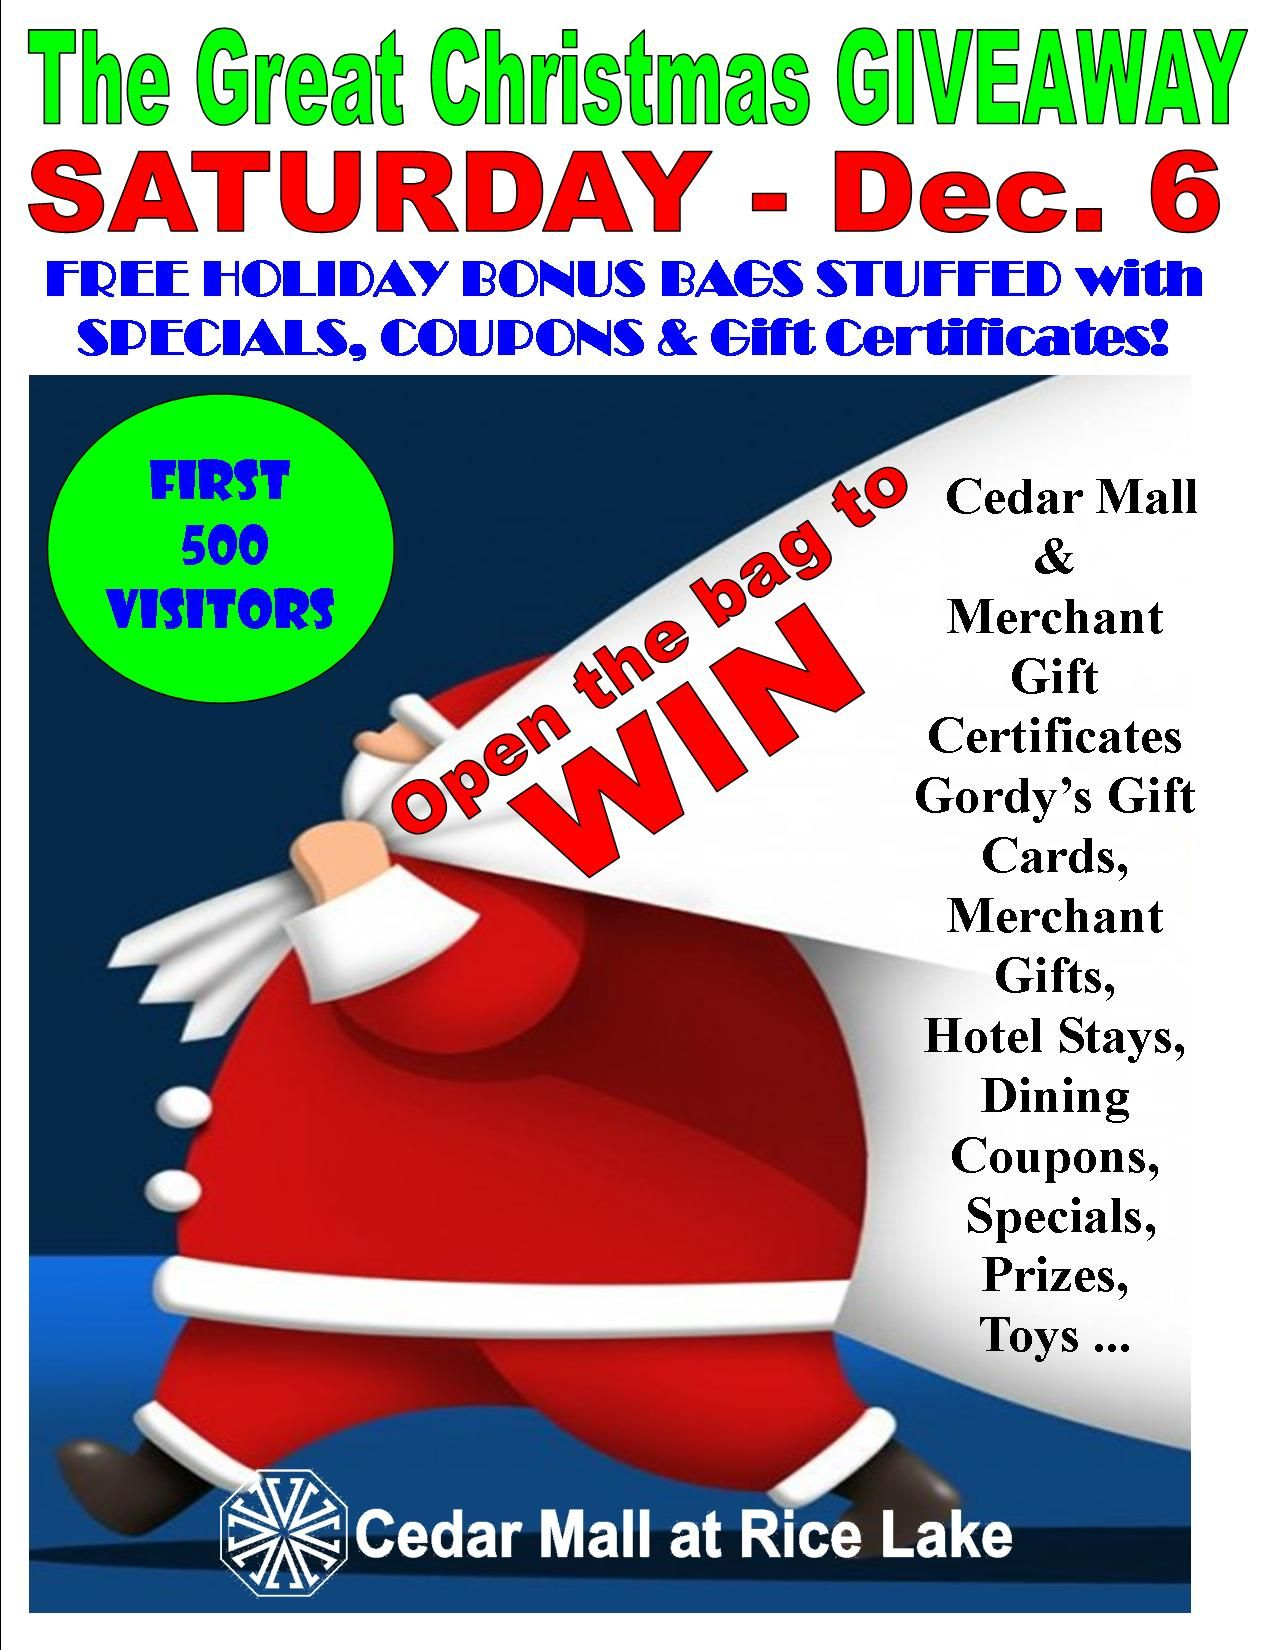 The GREAT CHRISTMAS GIVEAWAY is coming back to the Cedar